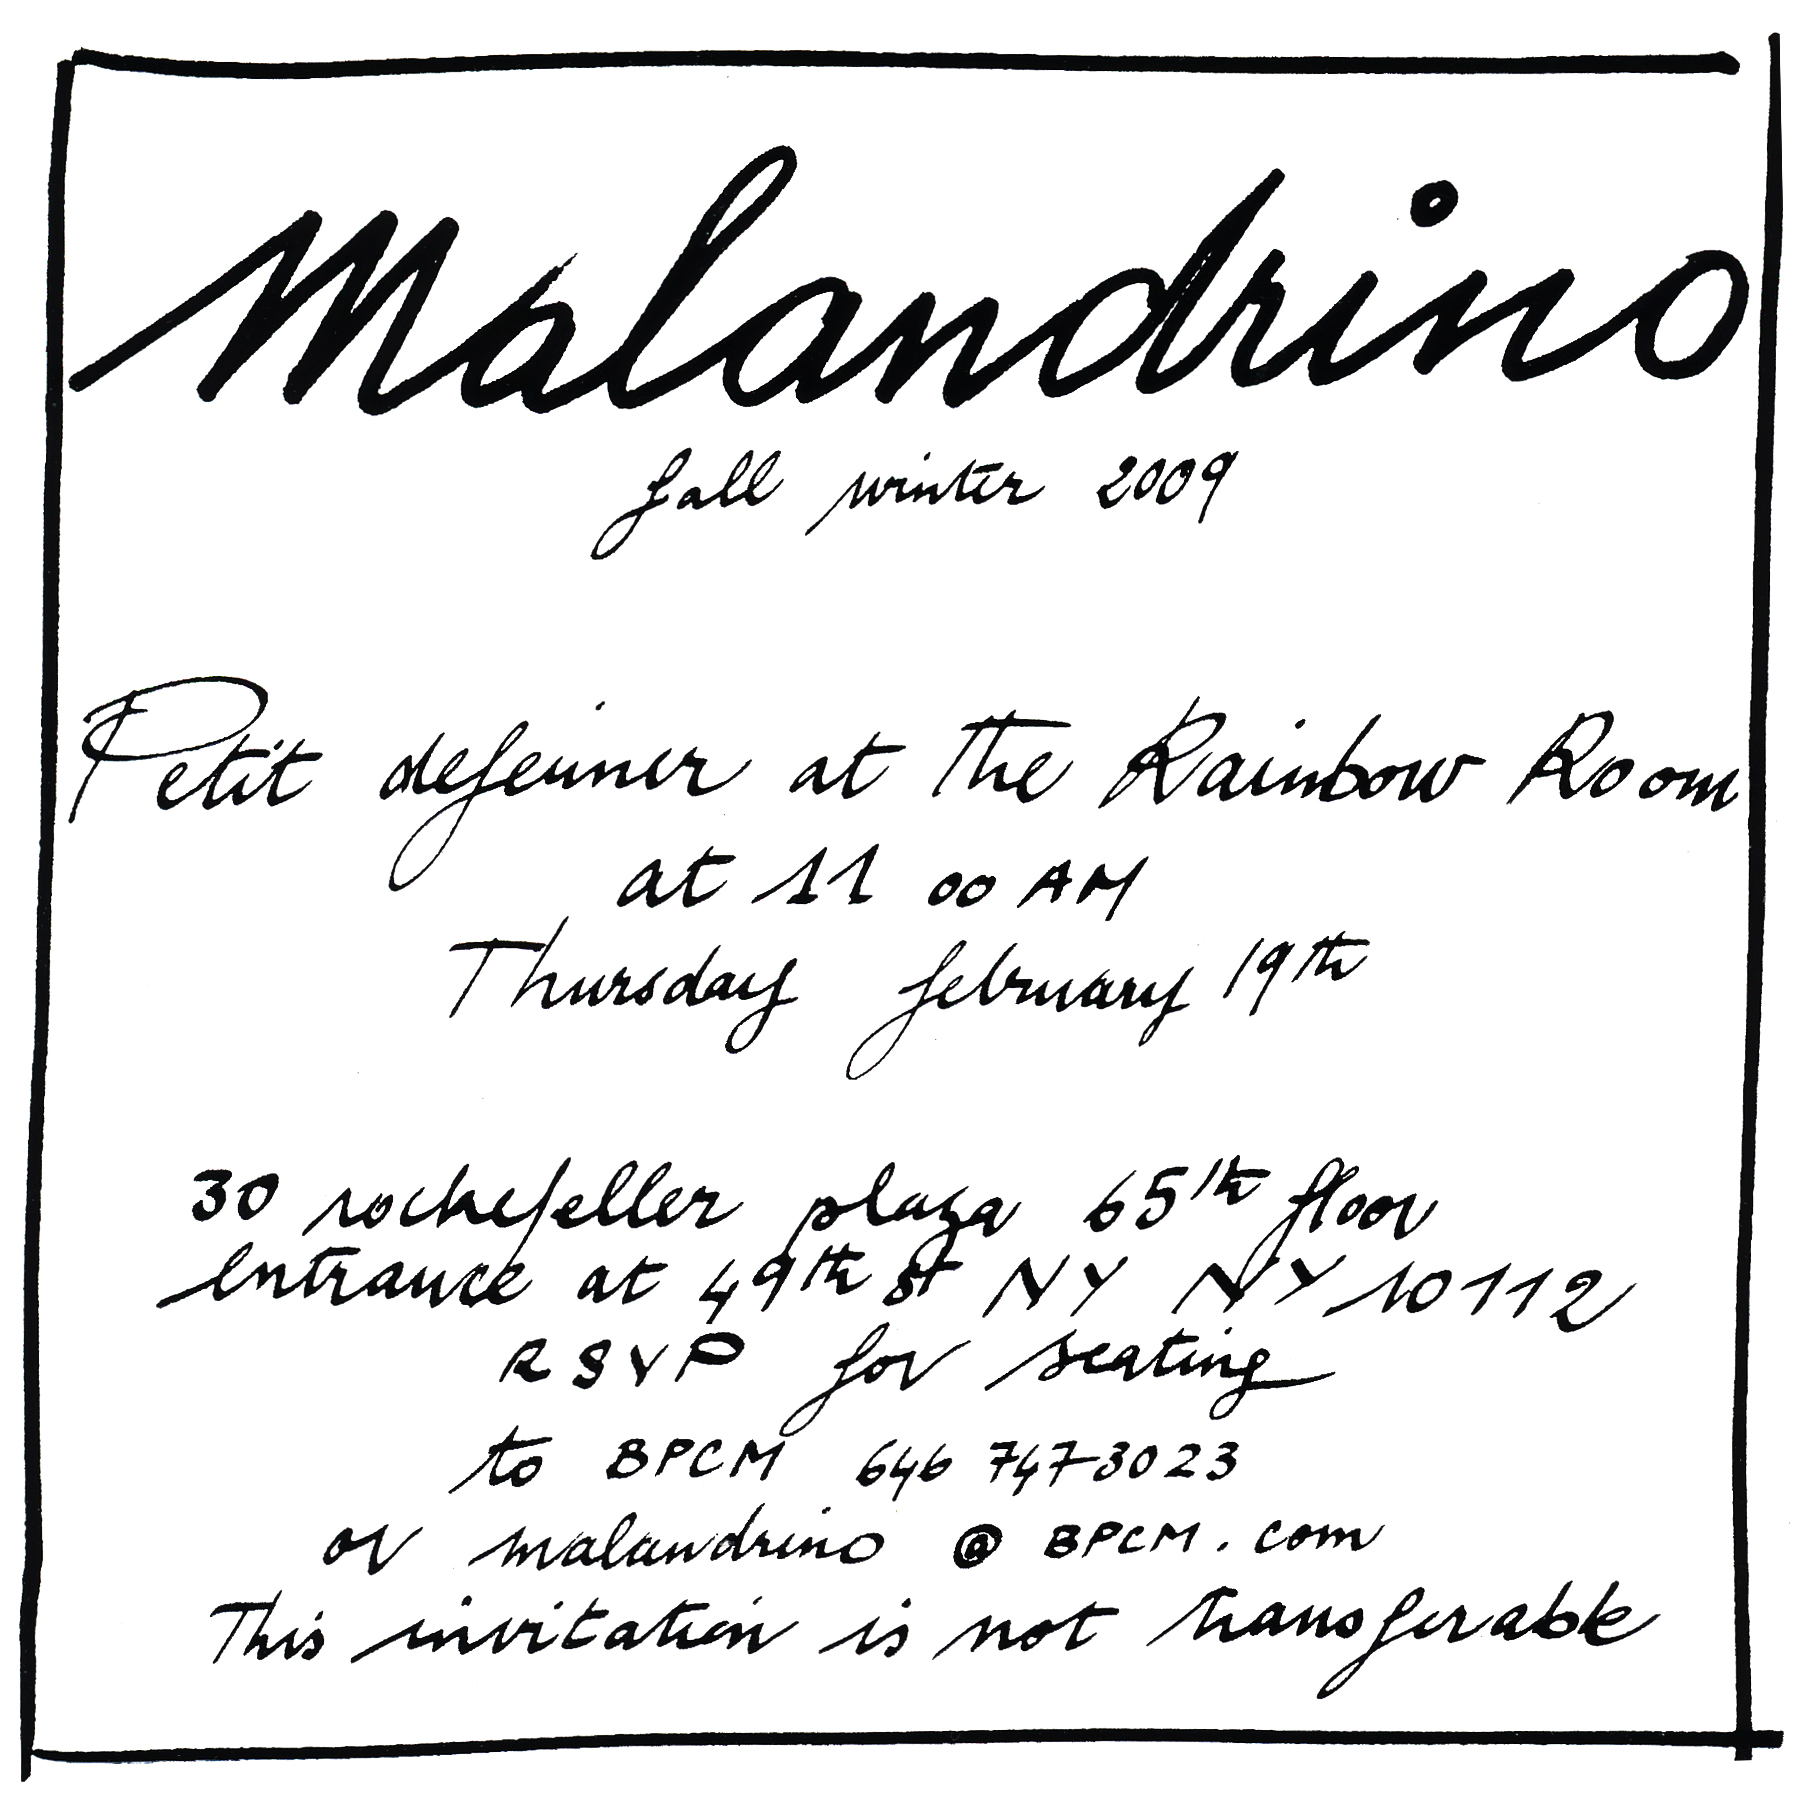 Malandrino NY Fashion Week Invite